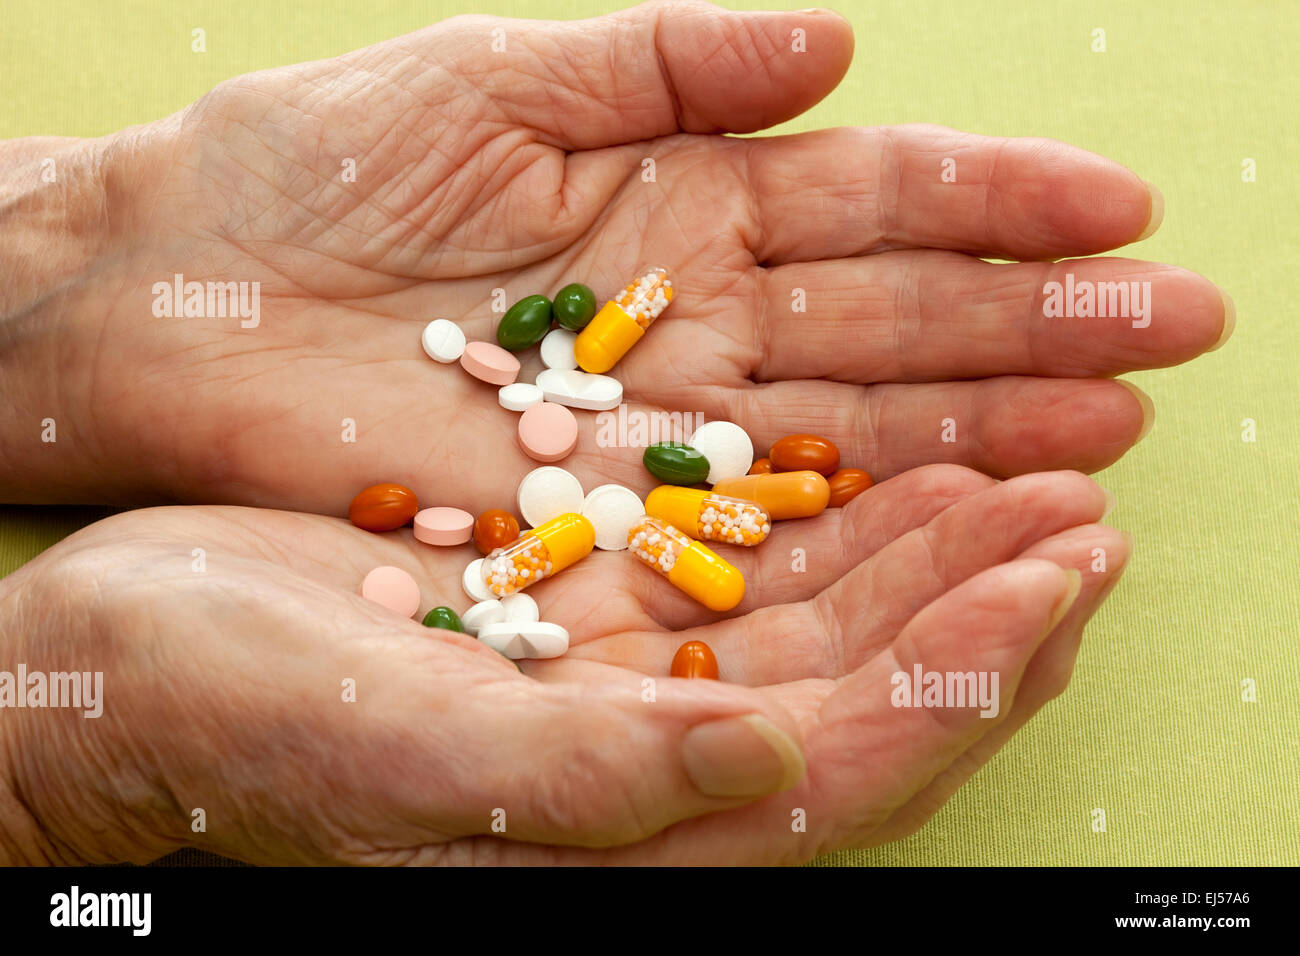 Cupped hands of an old lady with a cocktail of tablets  capsules and pills given to her as medication and treatment - Stock Image